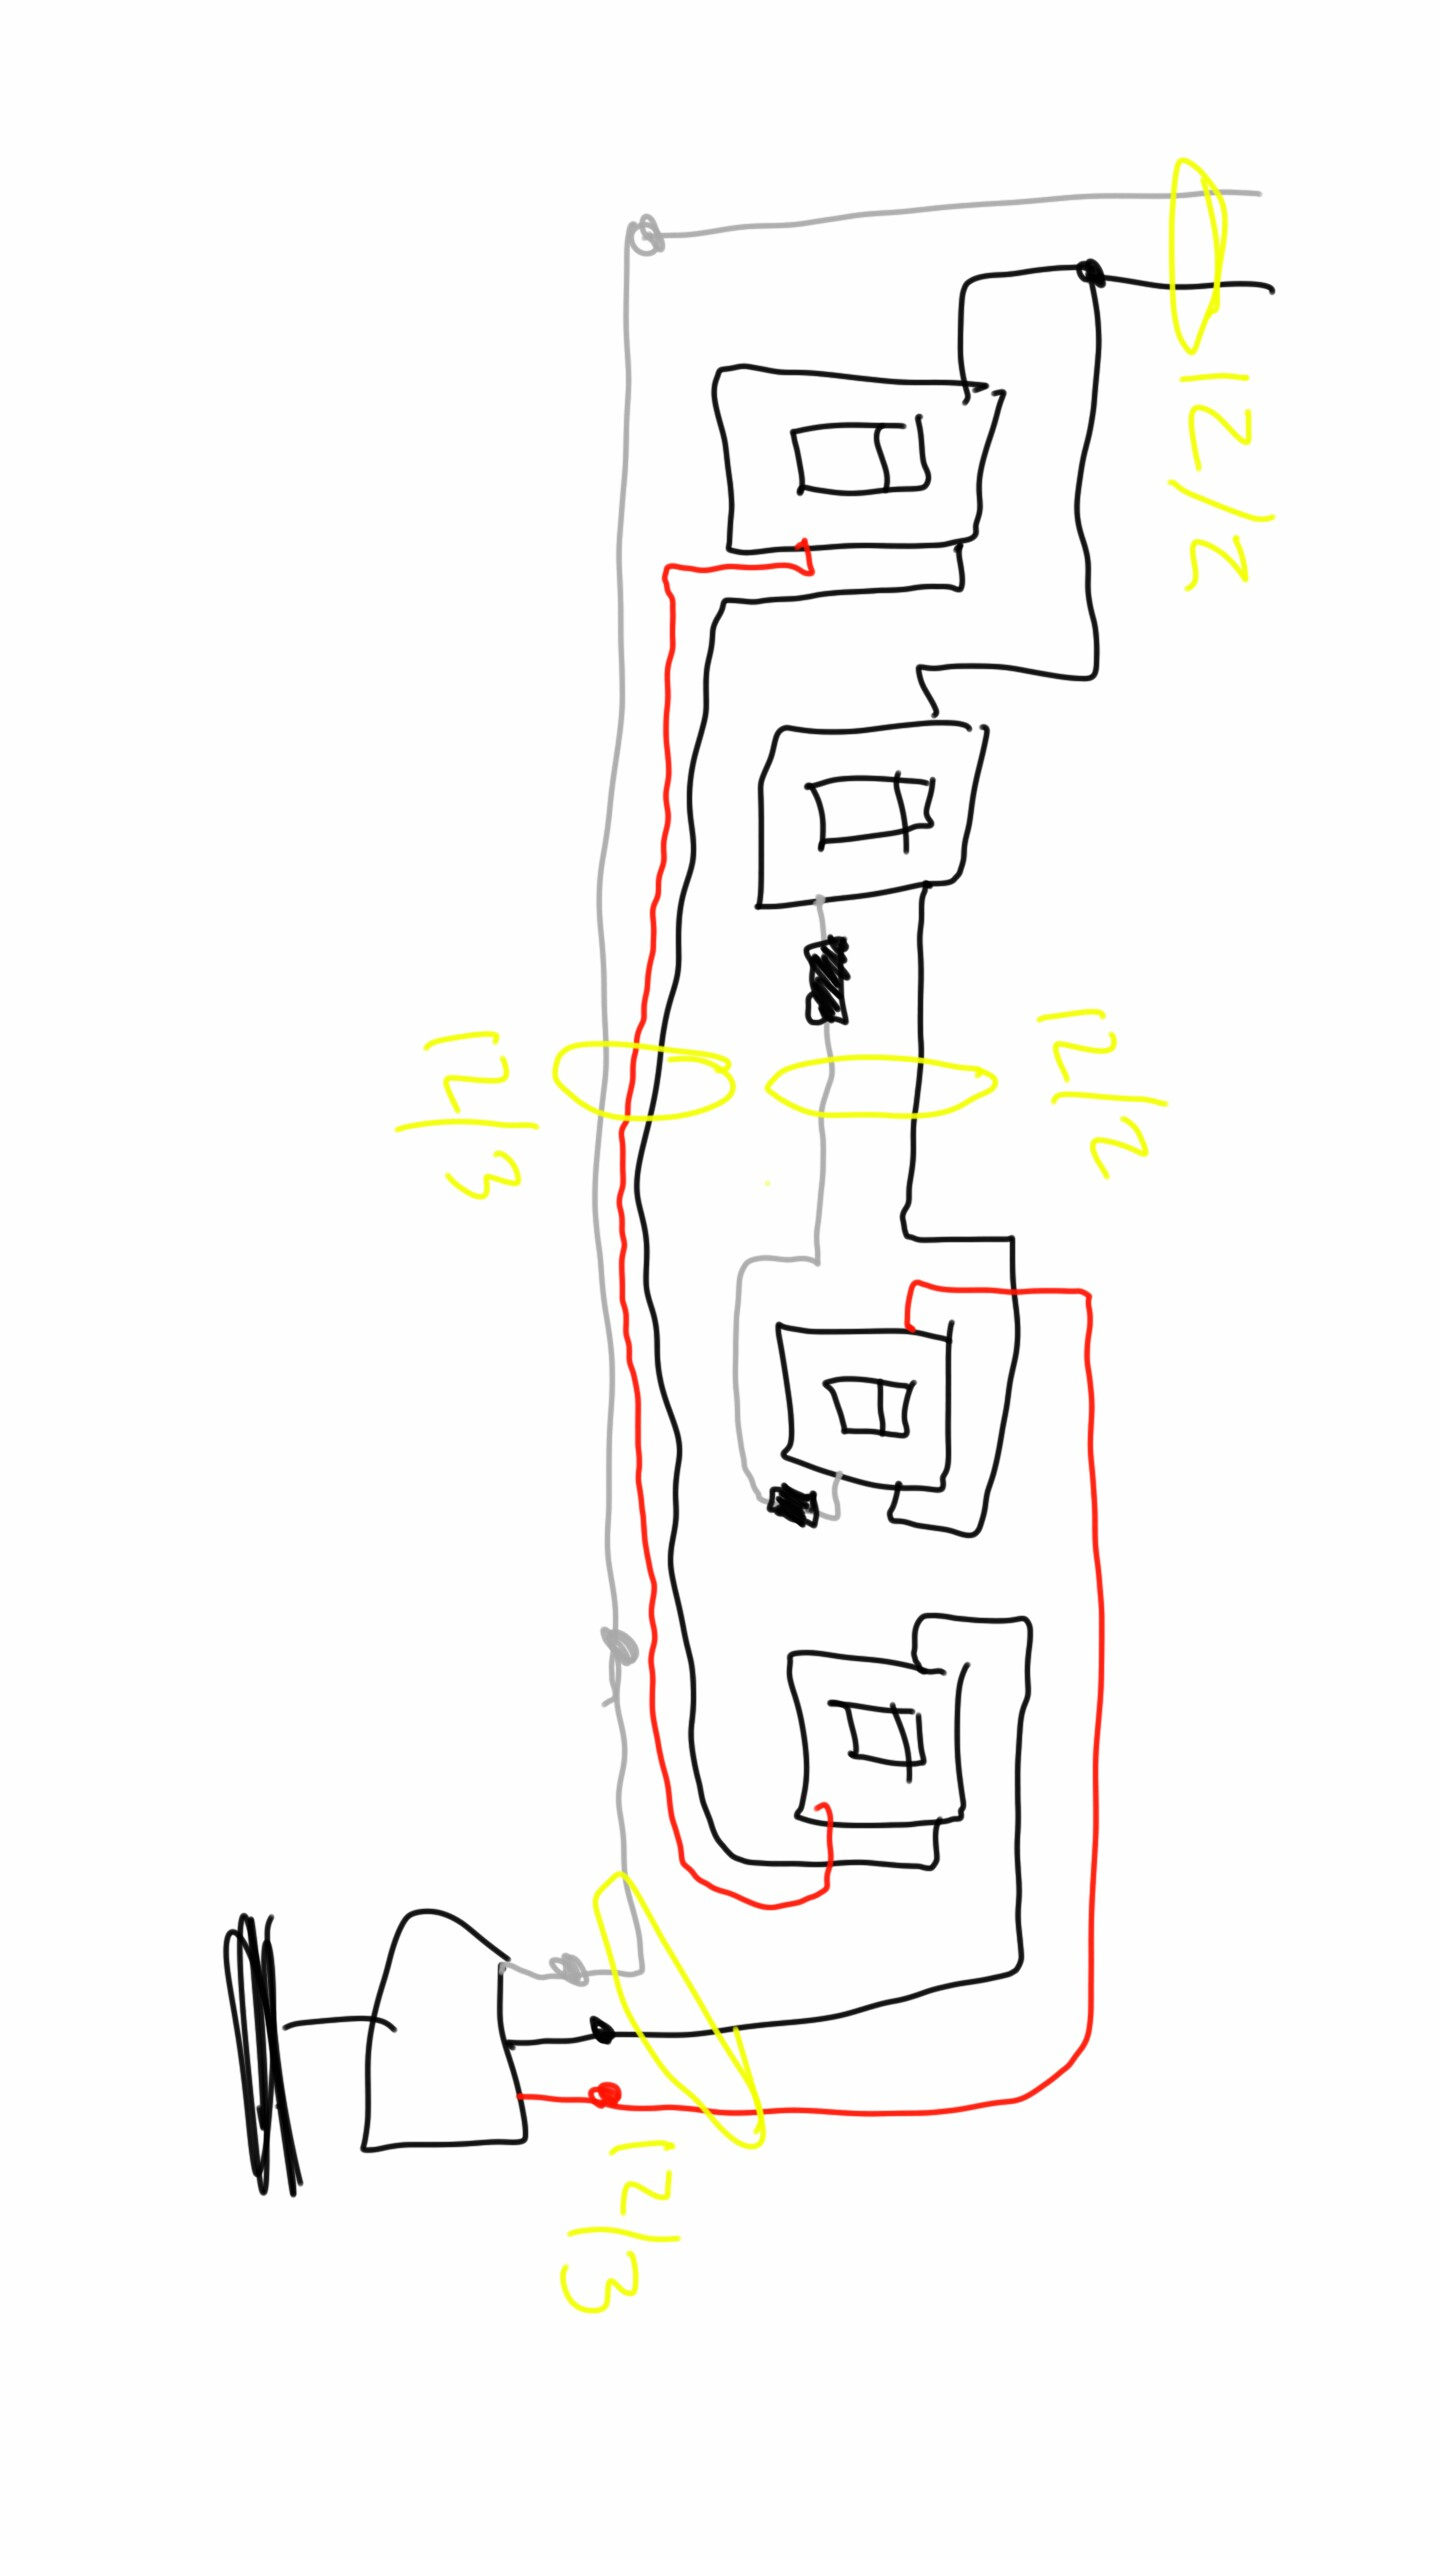 Electrical - What Wire Is Needed For A Double 3-Way Switch On Fan - Double Light Switch Wiring Diagram